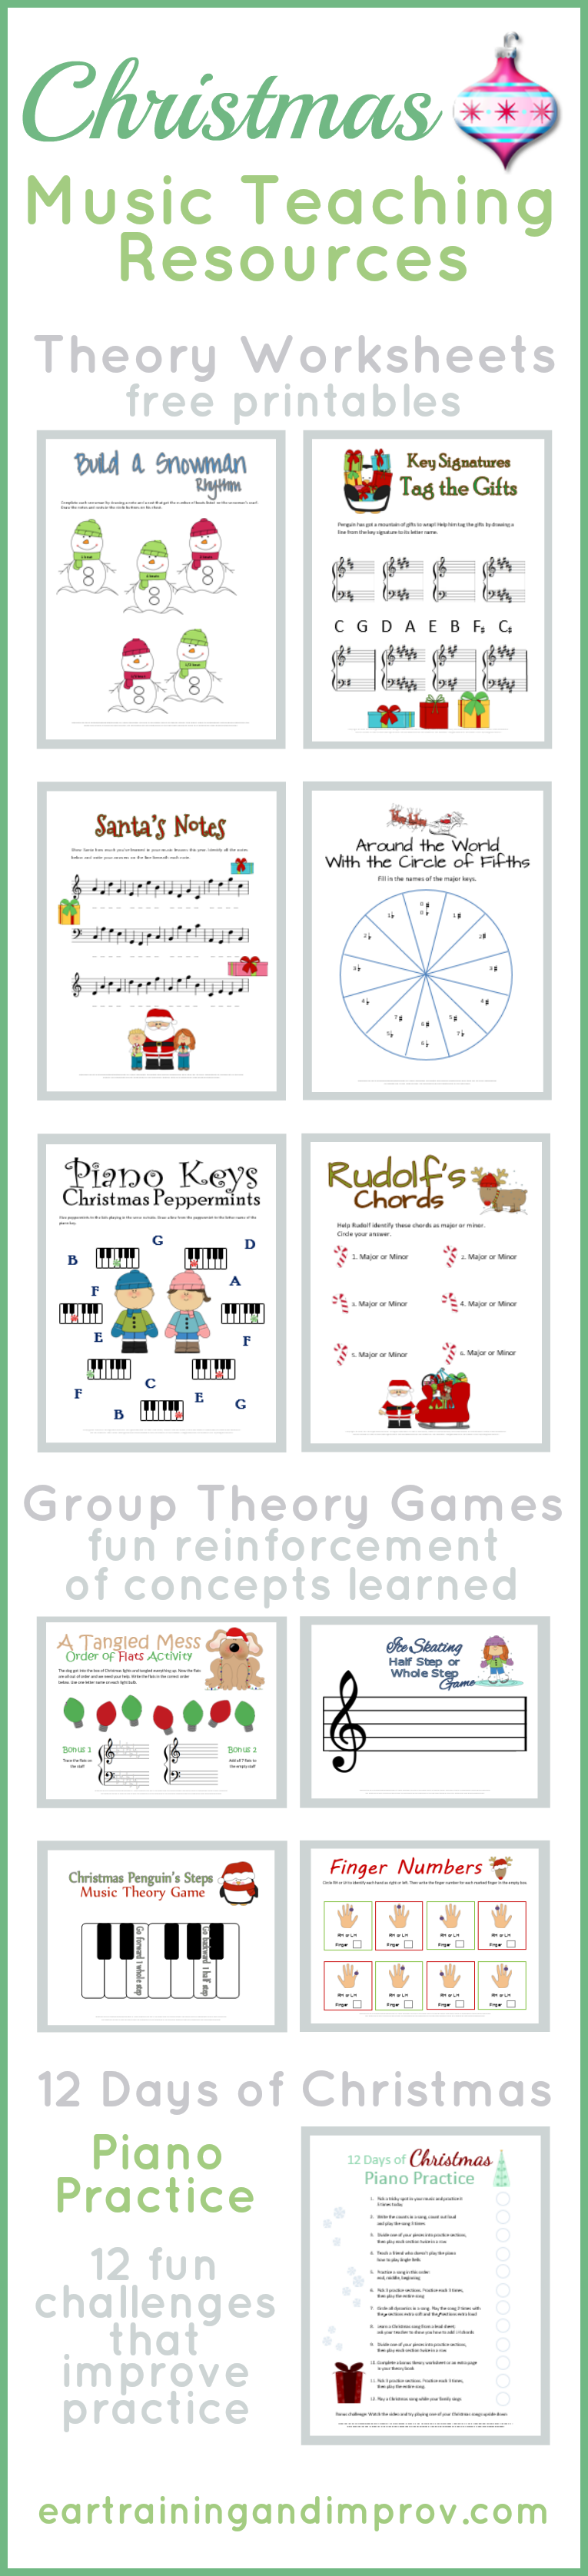 Worksheets Printable Music Theory Worksheets christmas music theory worksheets 20 free printables teaching resources group games 12